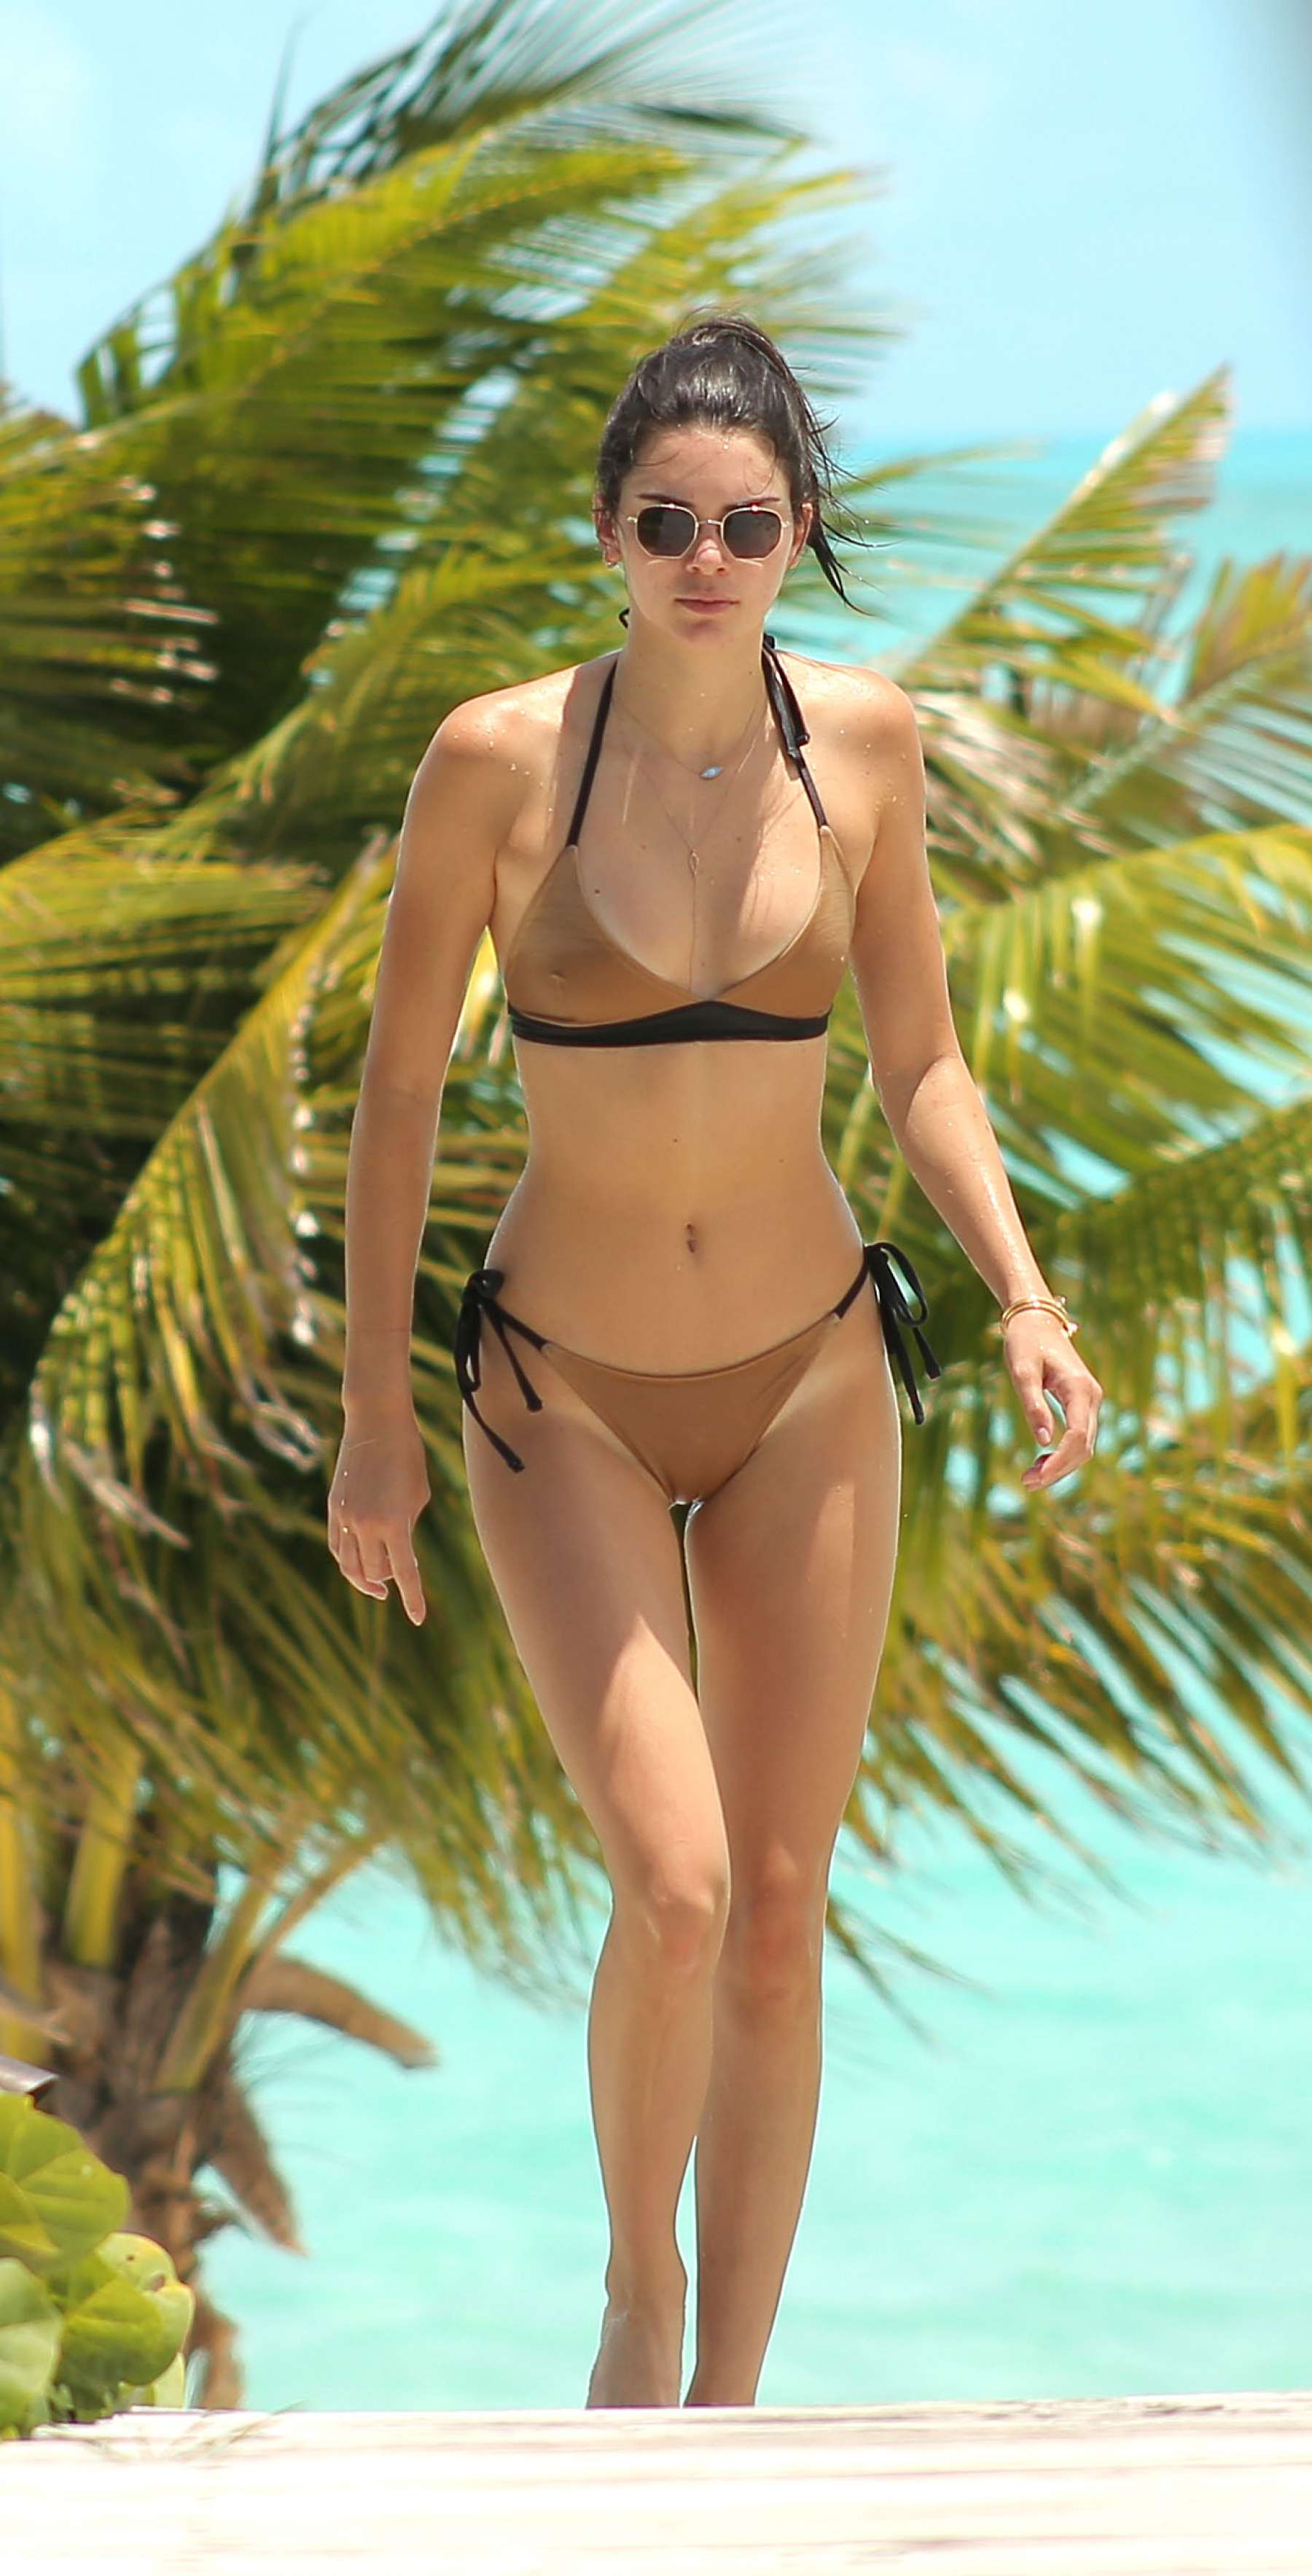 Kendall Jenner Bikini The Beach Turks And Caicos